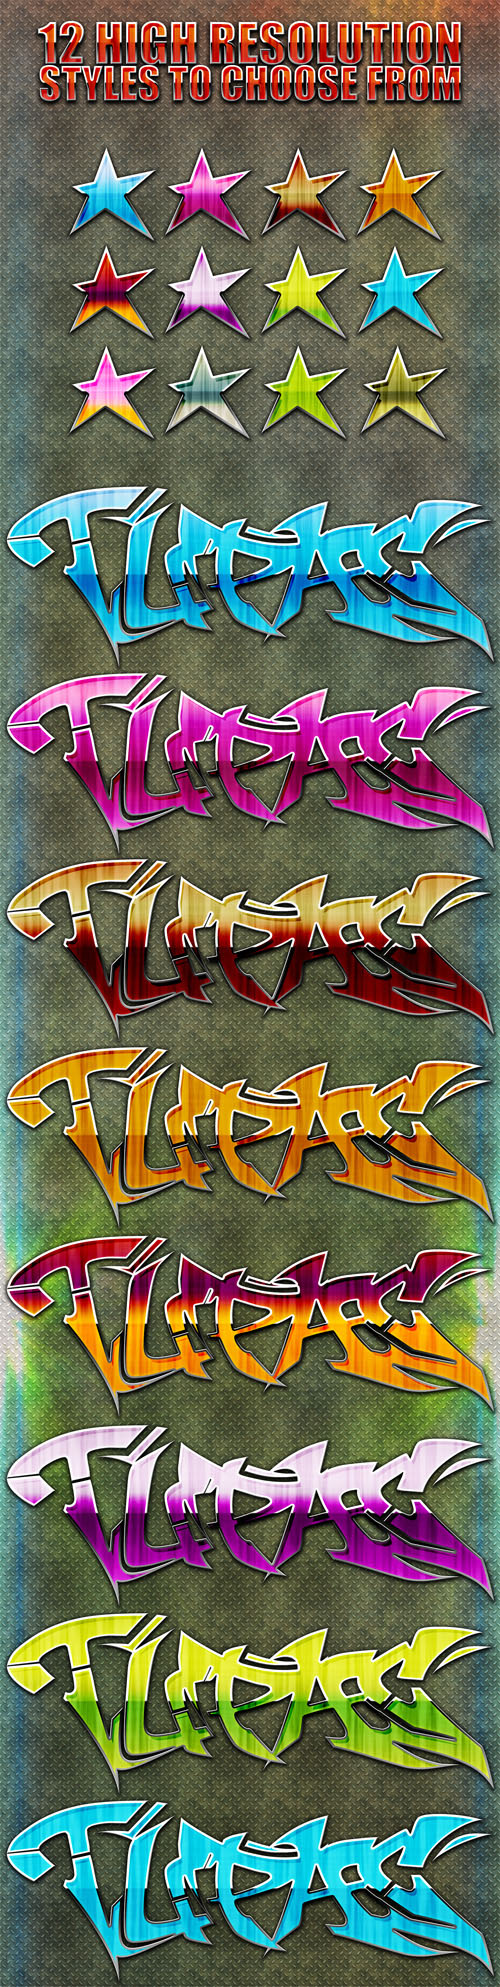 Glossy Graffiti Styles for Photoshop